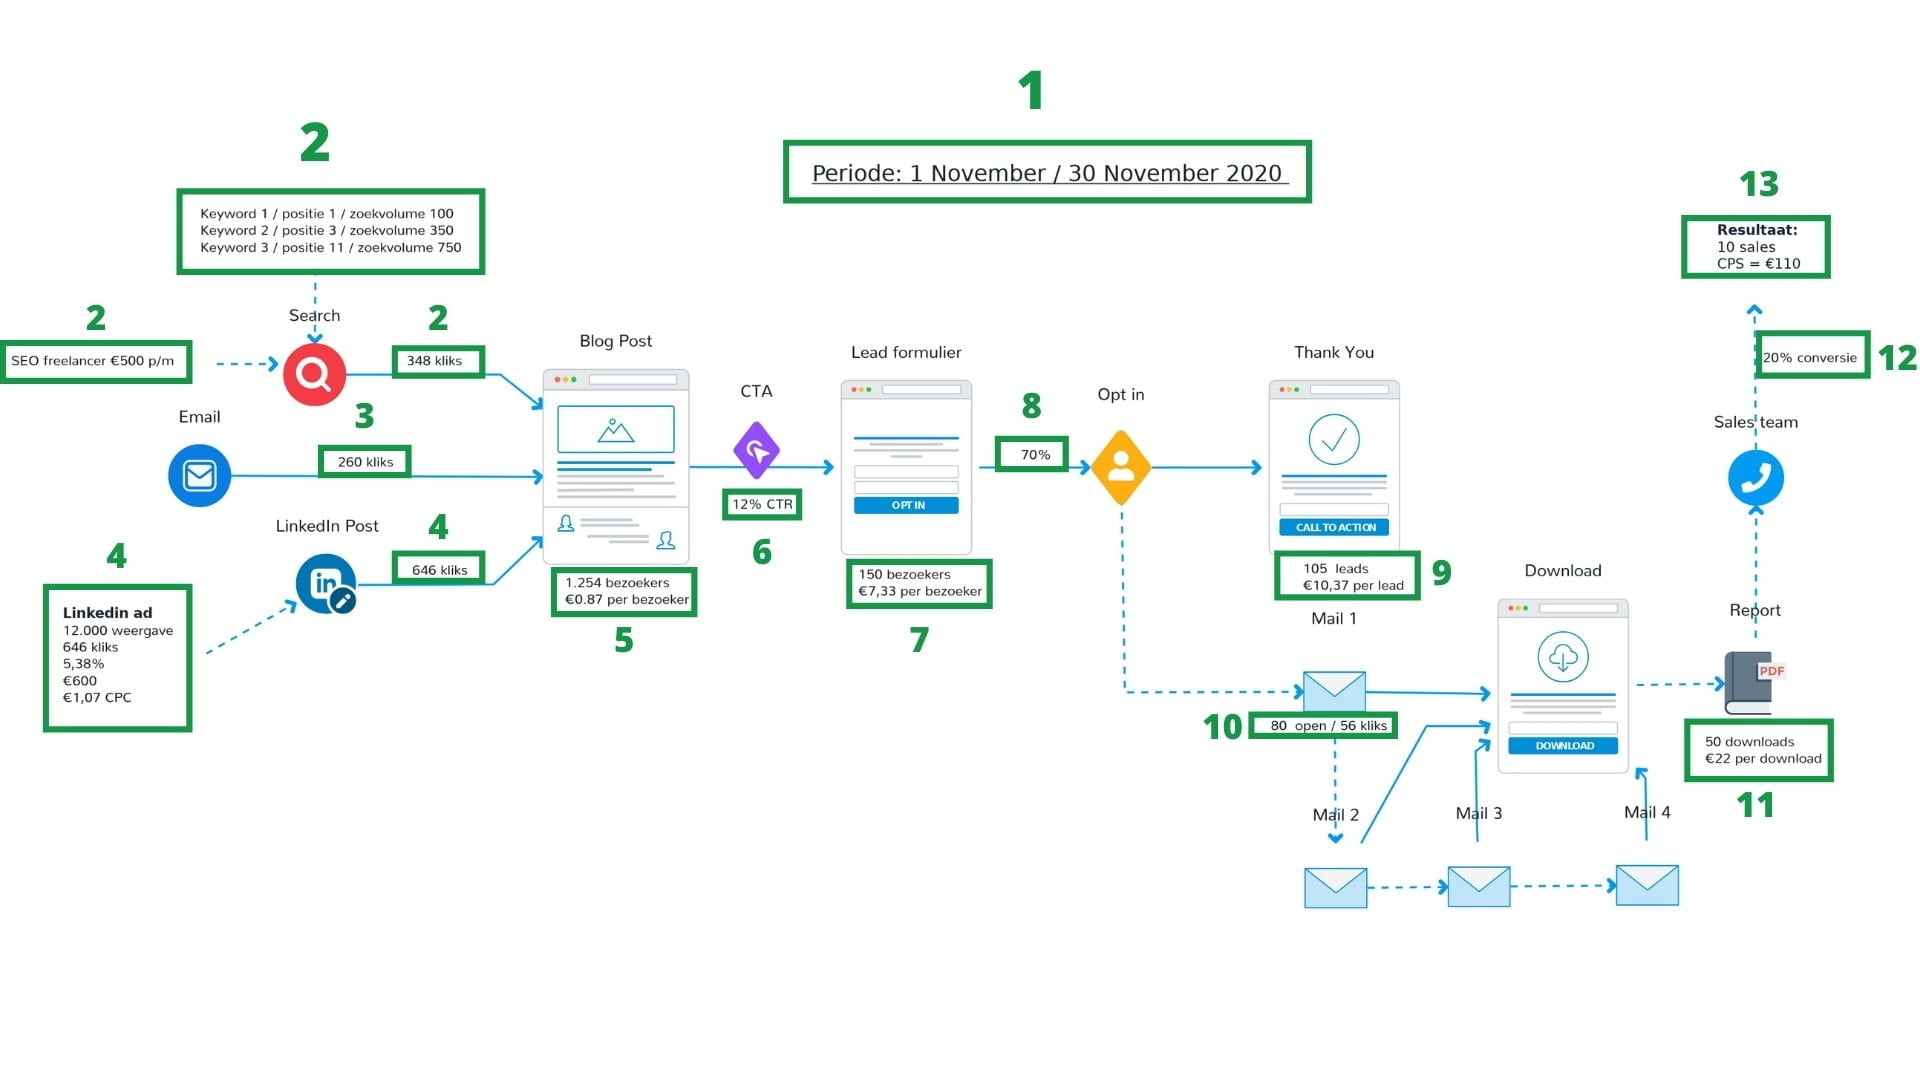 Marketing automation funnel